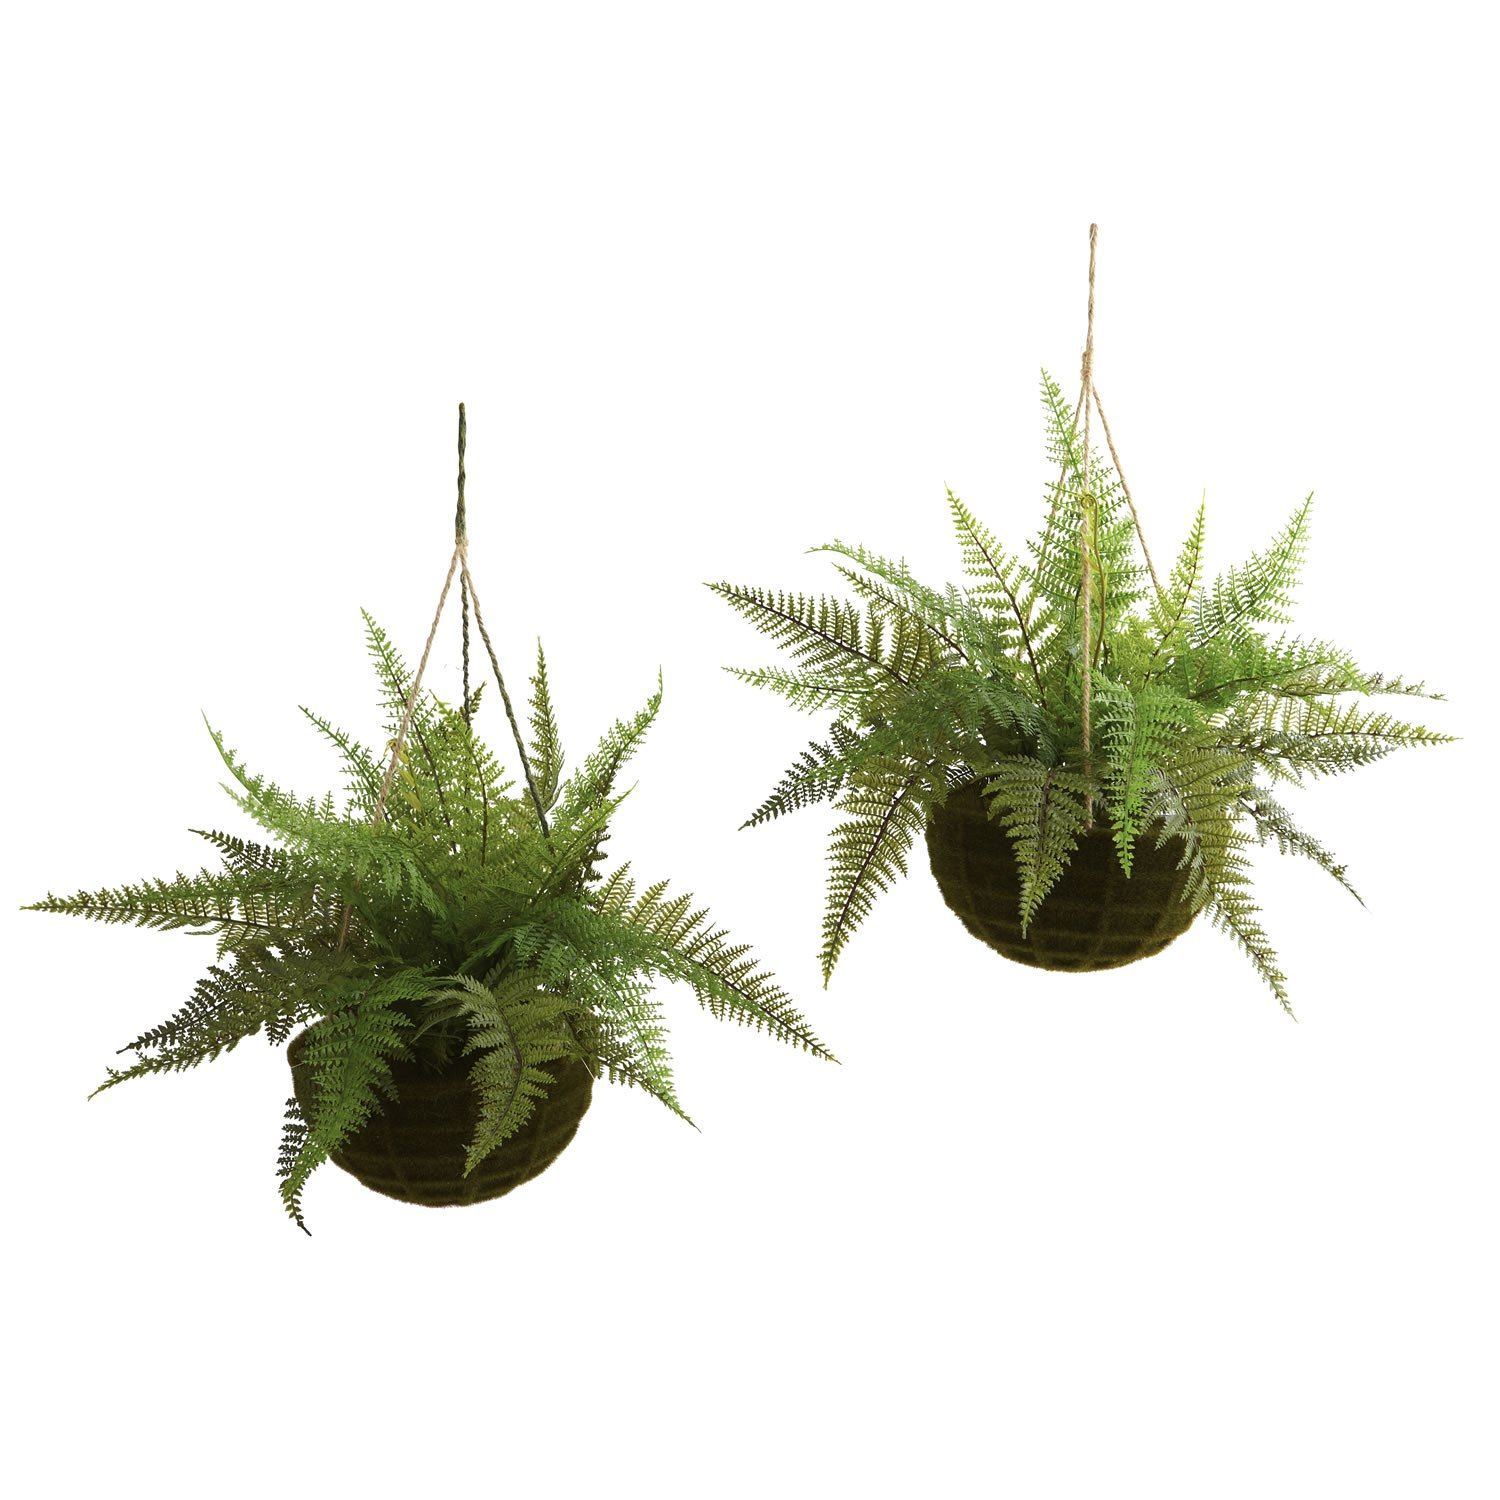 Silk 13 Leather Fern W Mossy Hanging Basket Indoor Outdoor Set Of 2